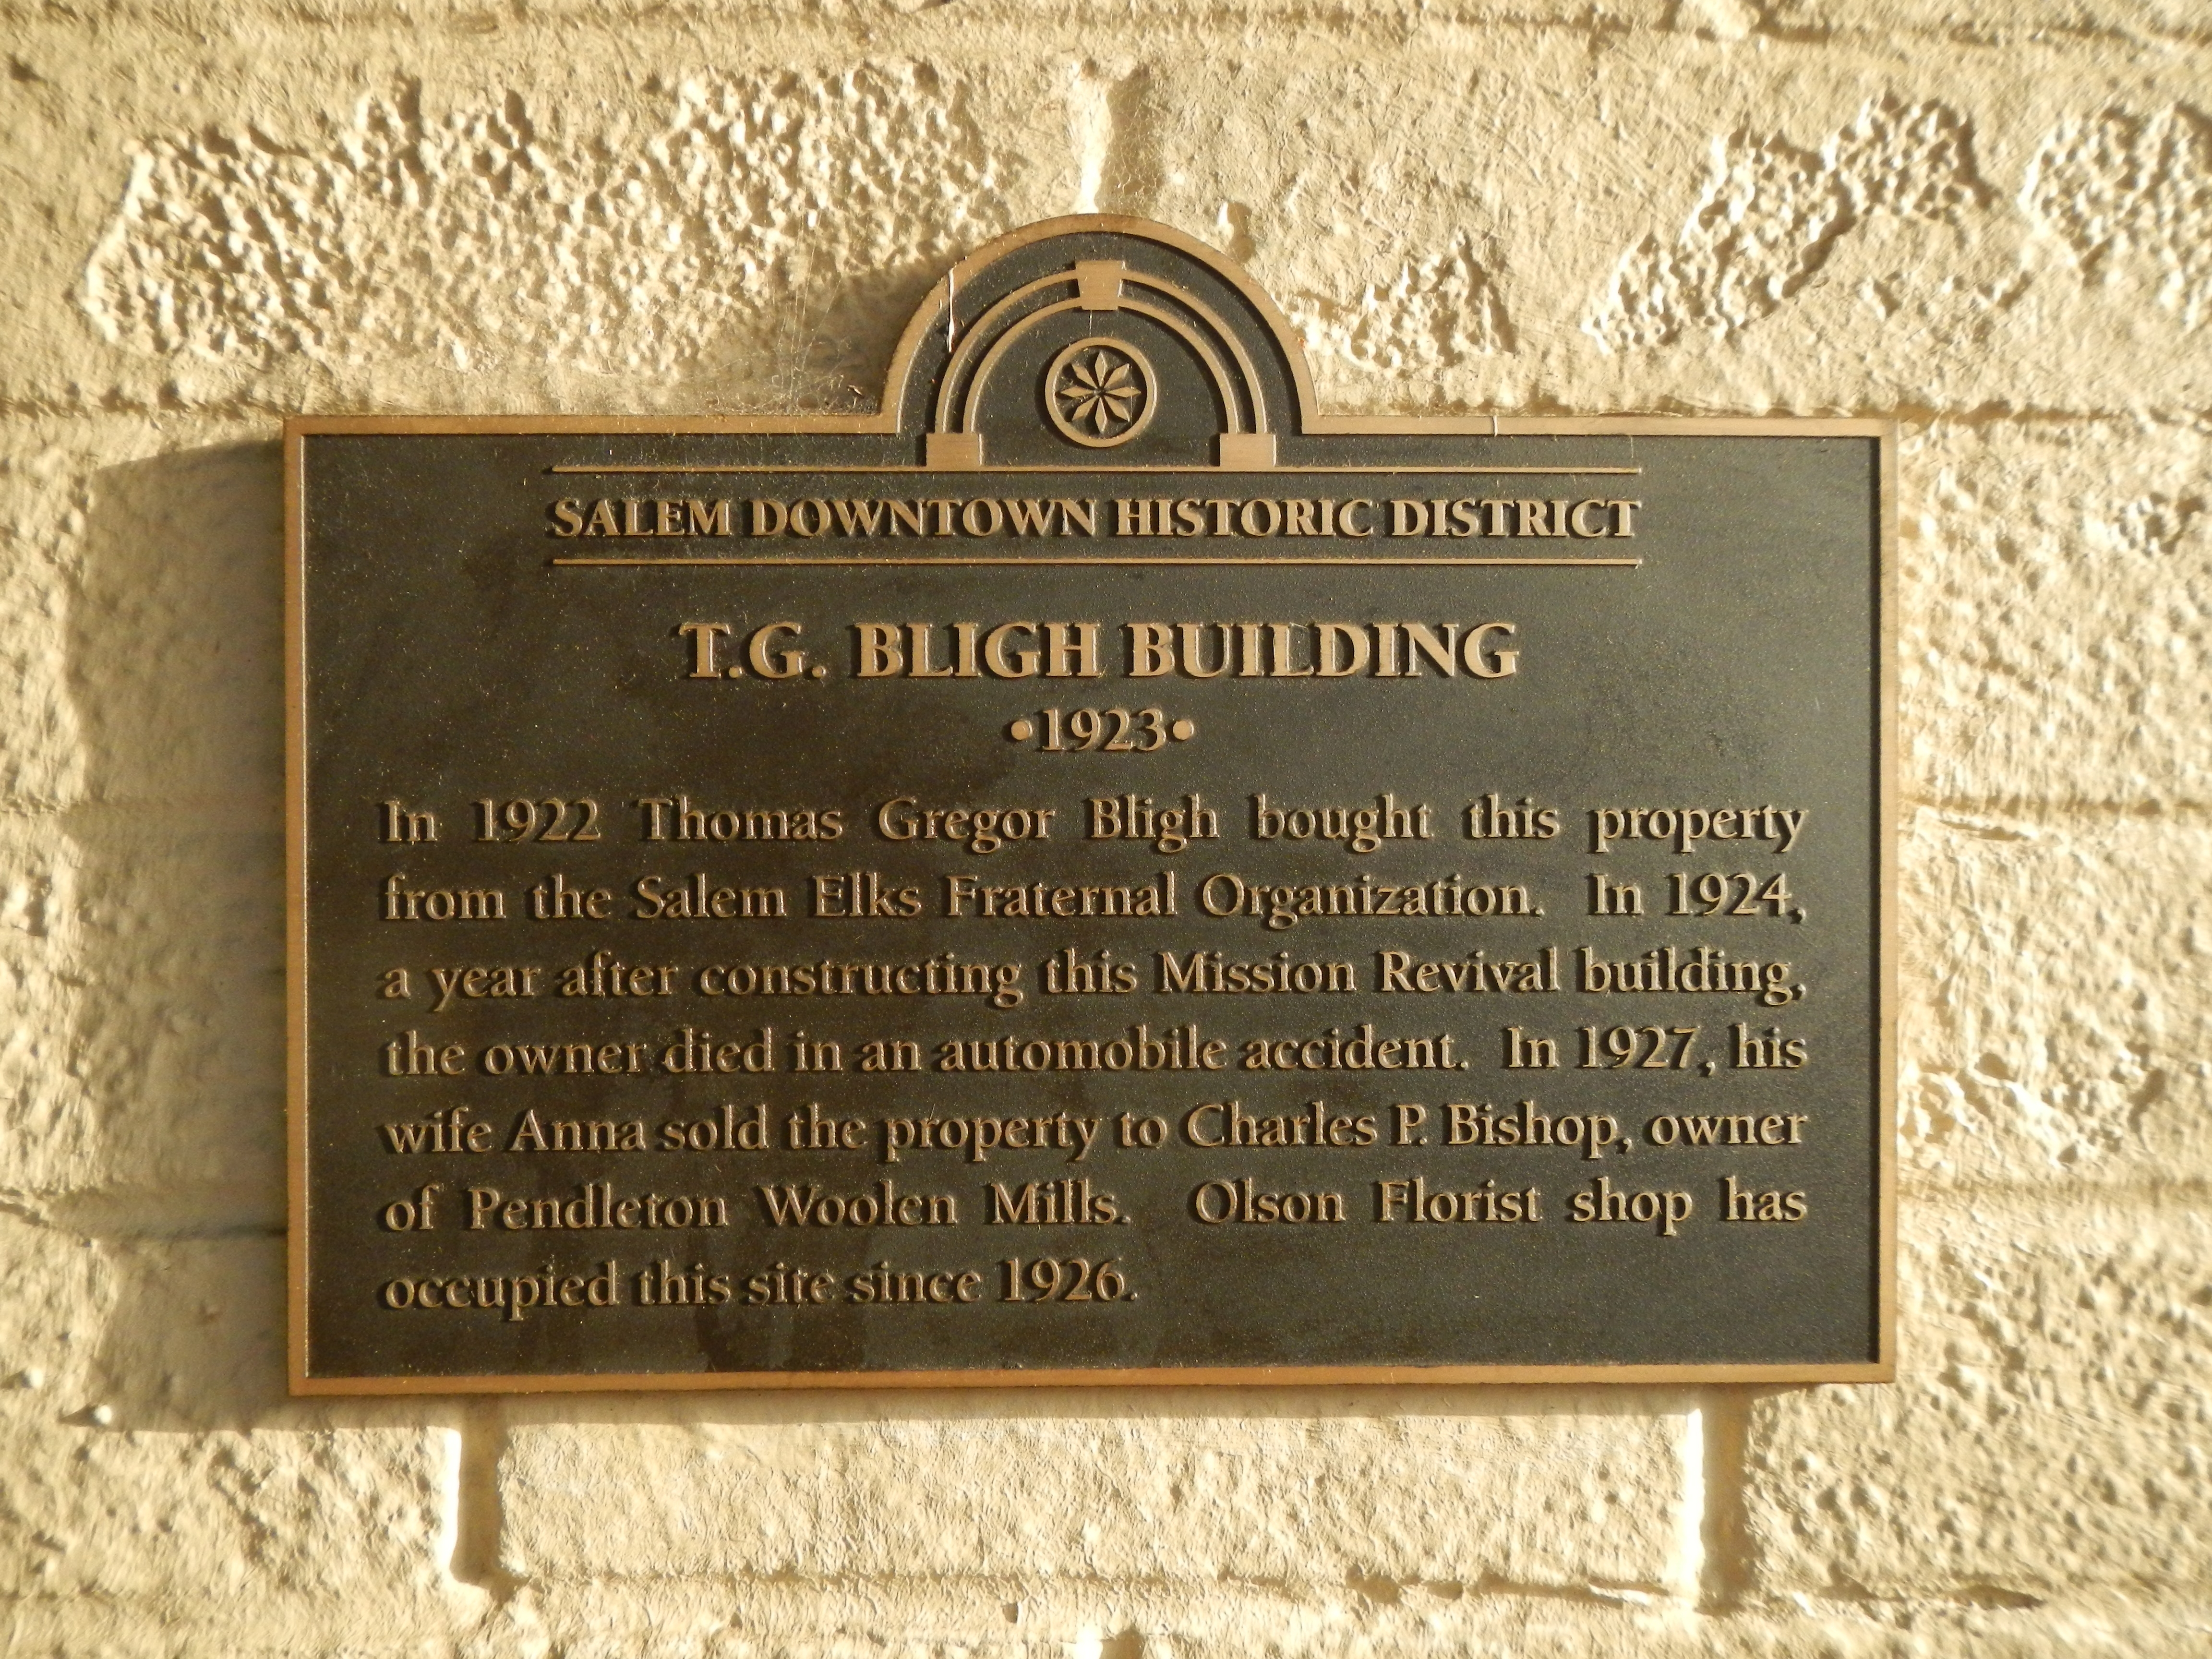 T.G. Bligh Building Marker